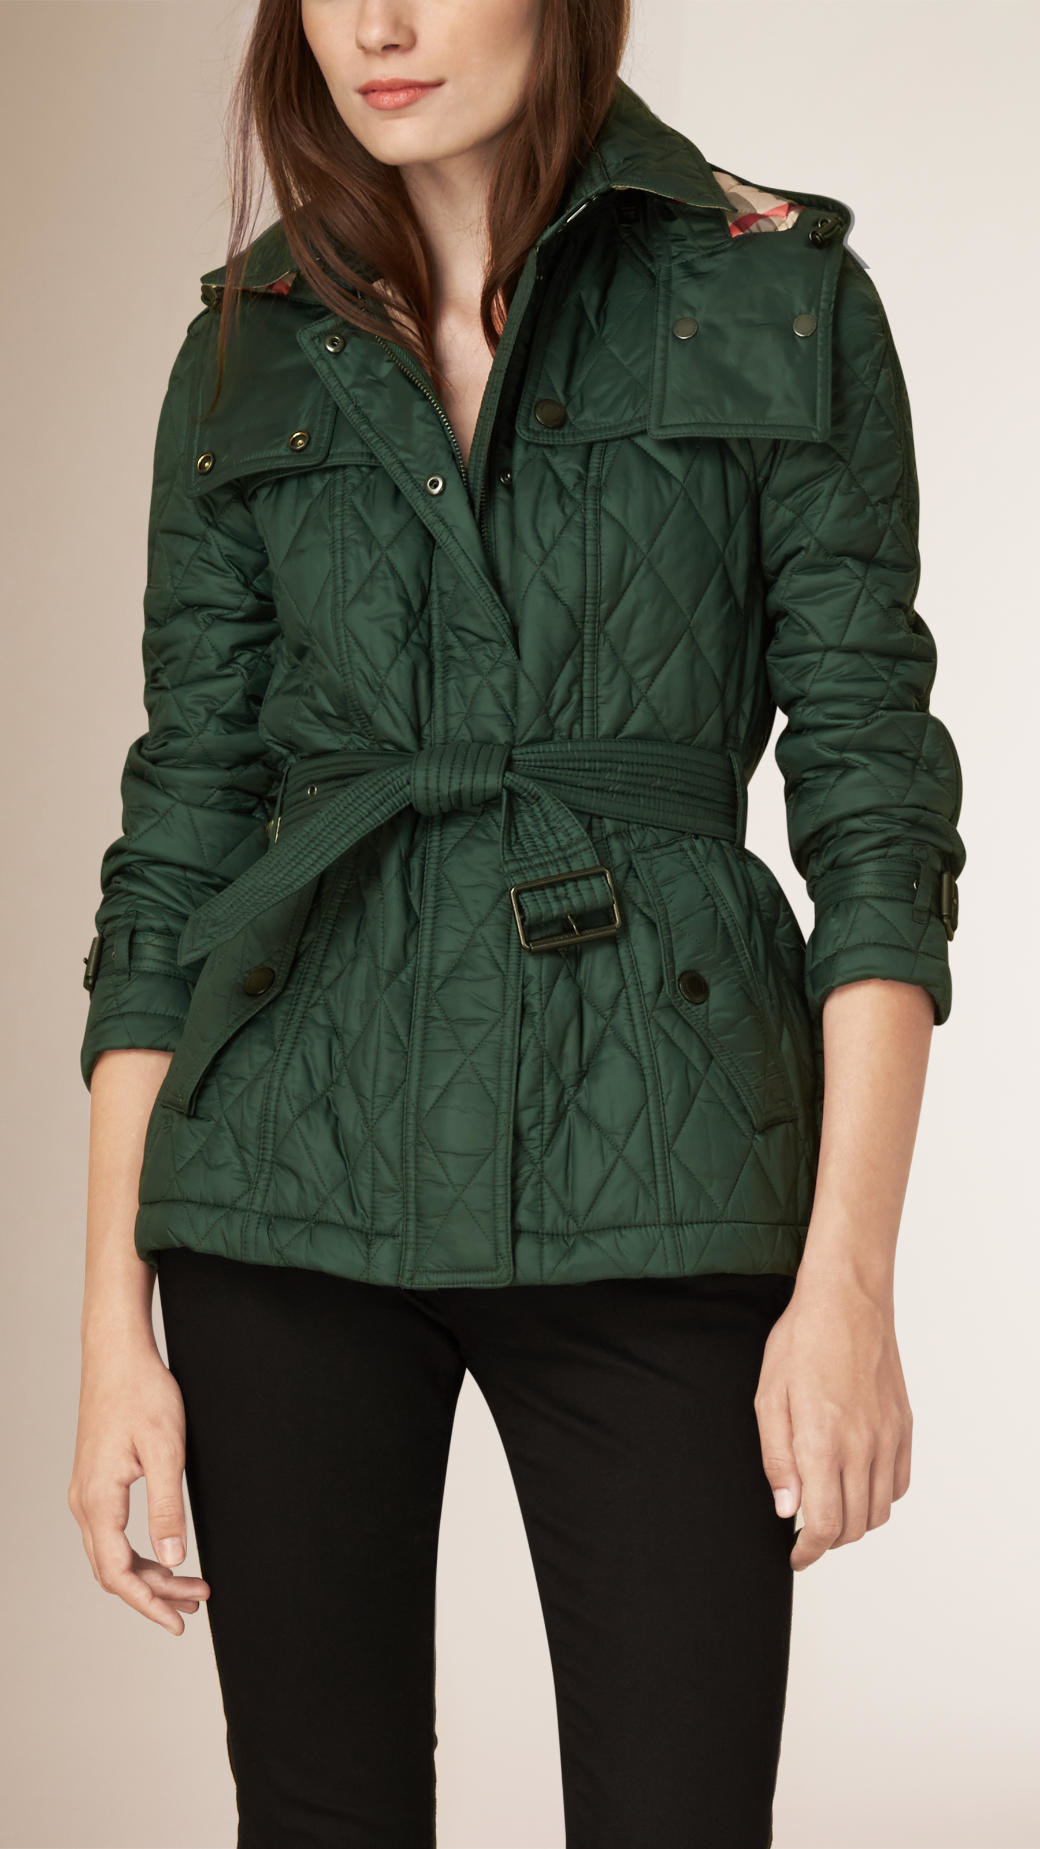 Lyst - Burberry Diamond Quilted Jacket in Green : diamond quilted jacket burberry - Adamdwight.com